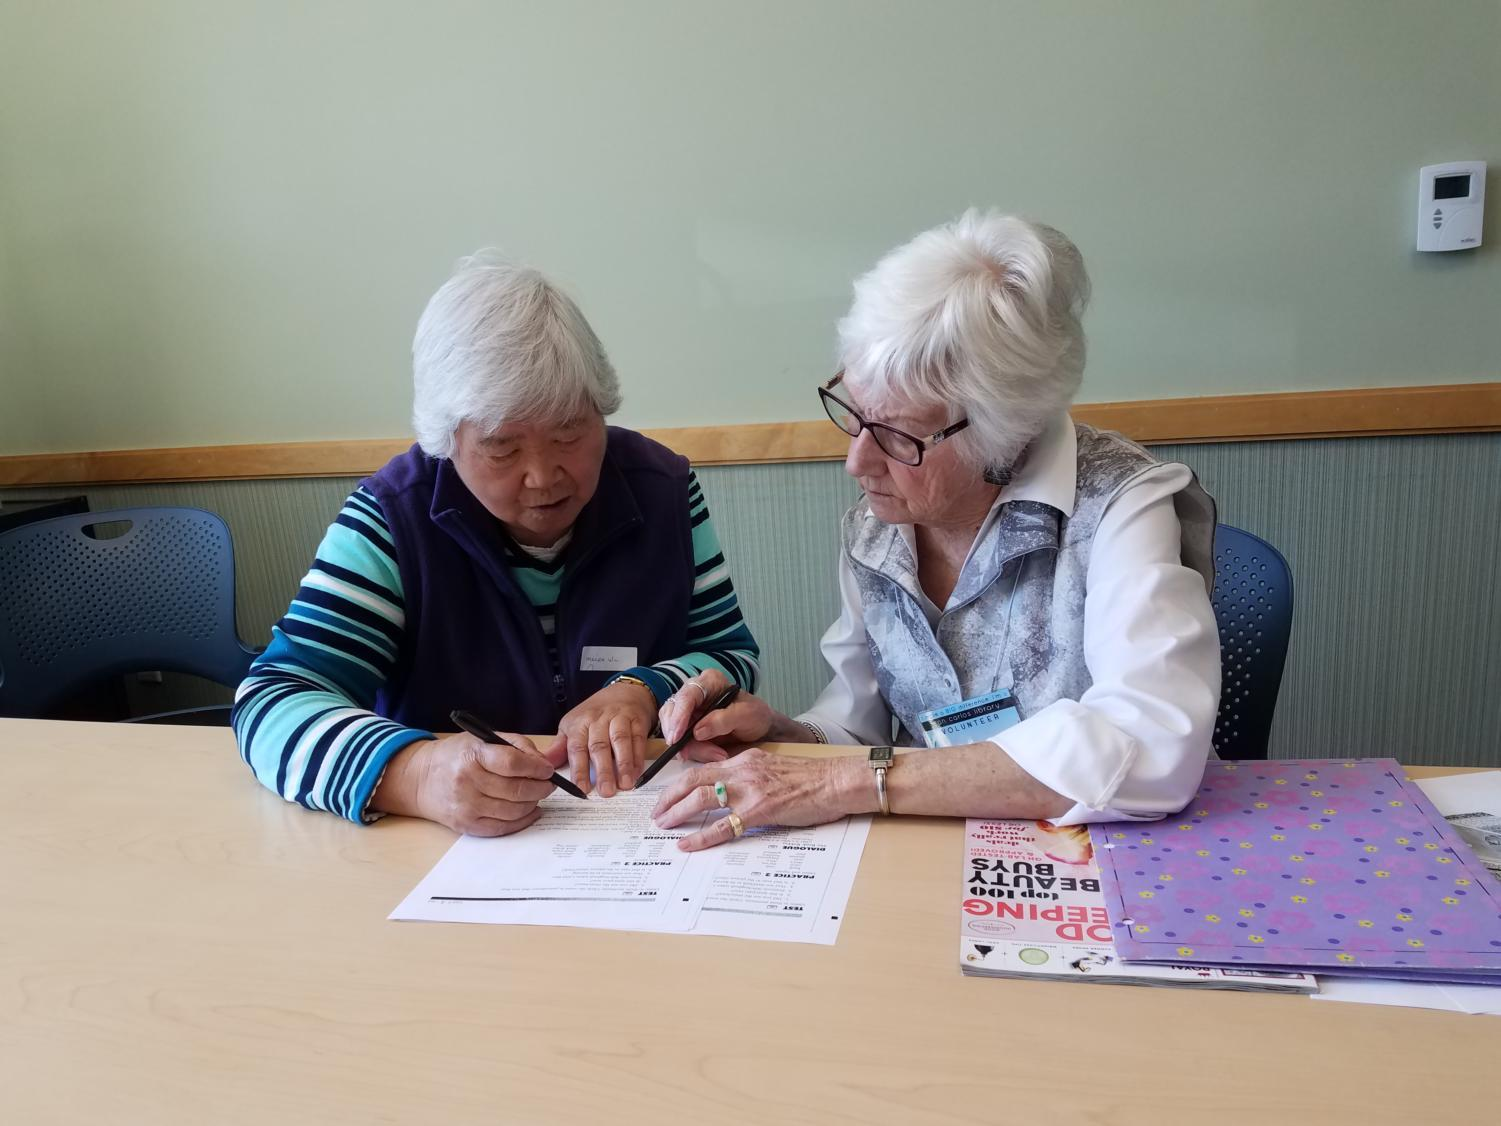 A volunteer works with a club participant on phrases associated with grocery shopping.